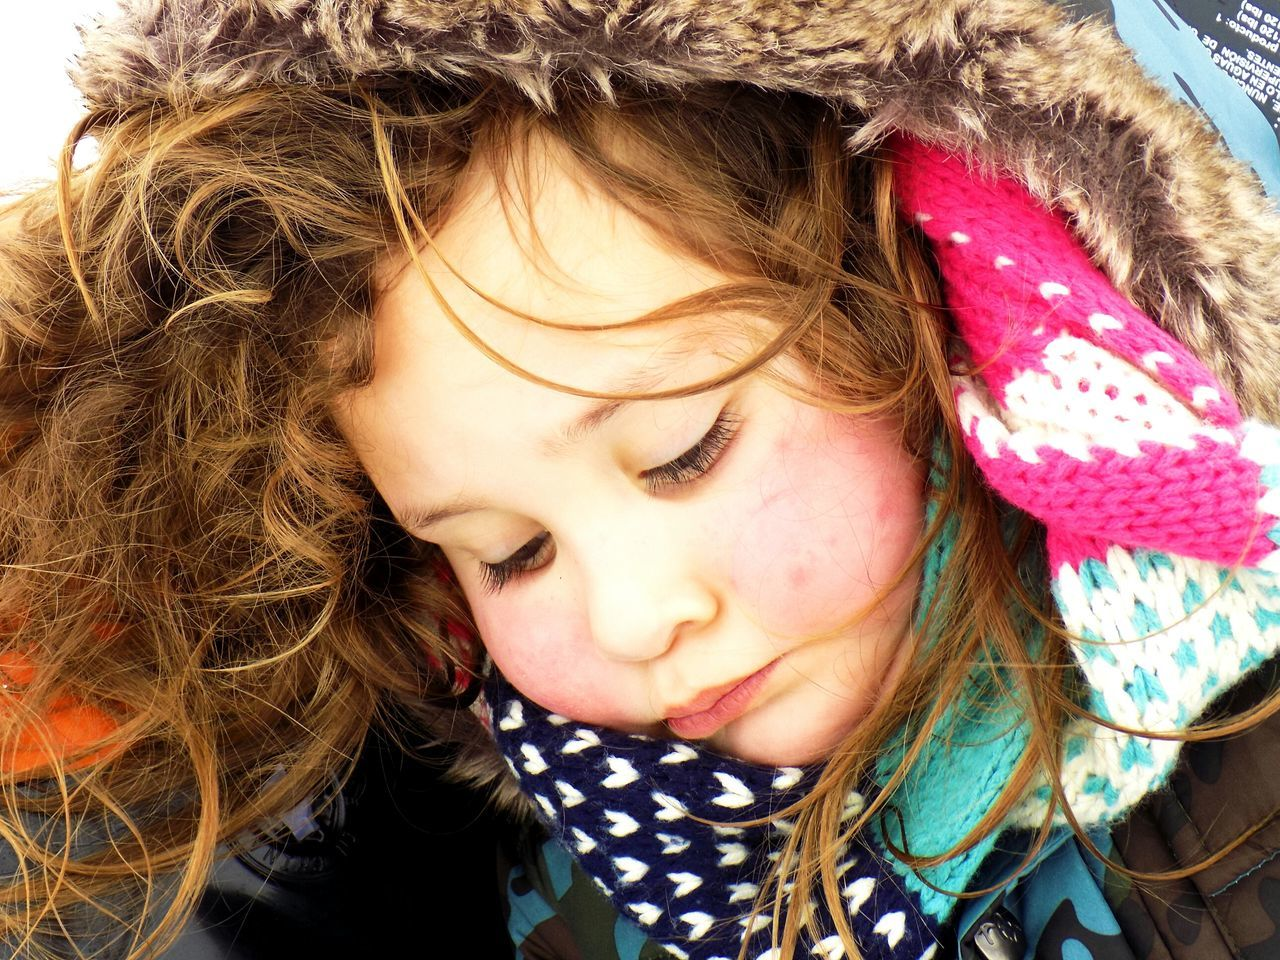 Daughter Girl Wrapped Up Winter_collection Winter Fashion Texture Headshot Close-up Human Face Beauty Kids Season  Scarf Hair Contemplative Peaceful Face Portrait EyeEm Best Shots EyeEmbestshots POTD